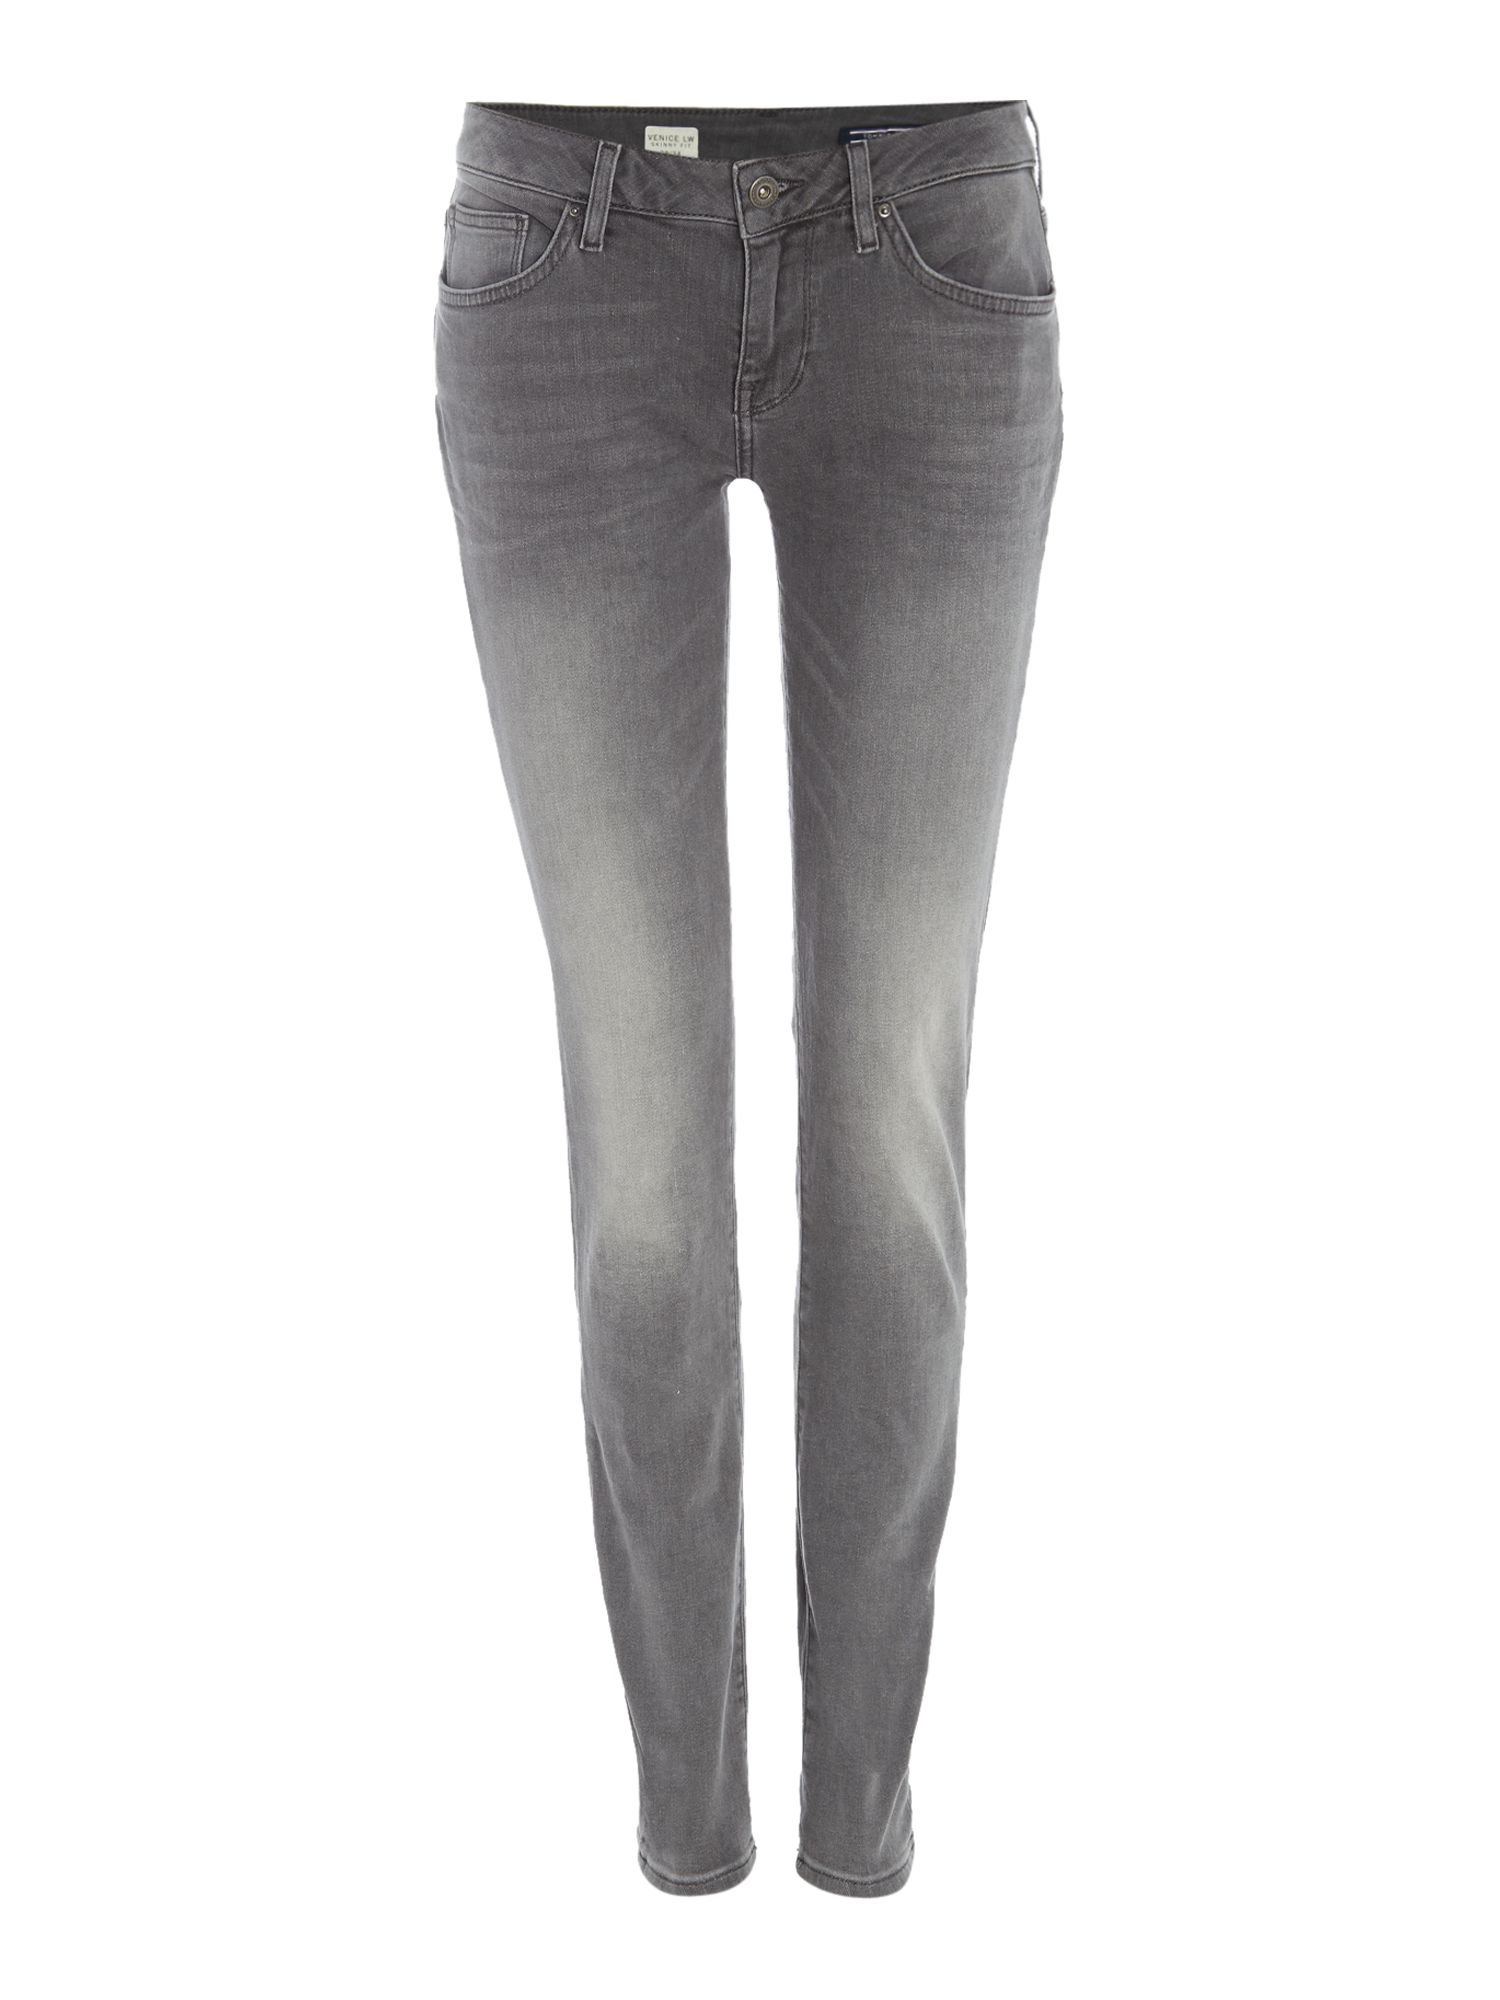 Venice Maily Jeans, Grey